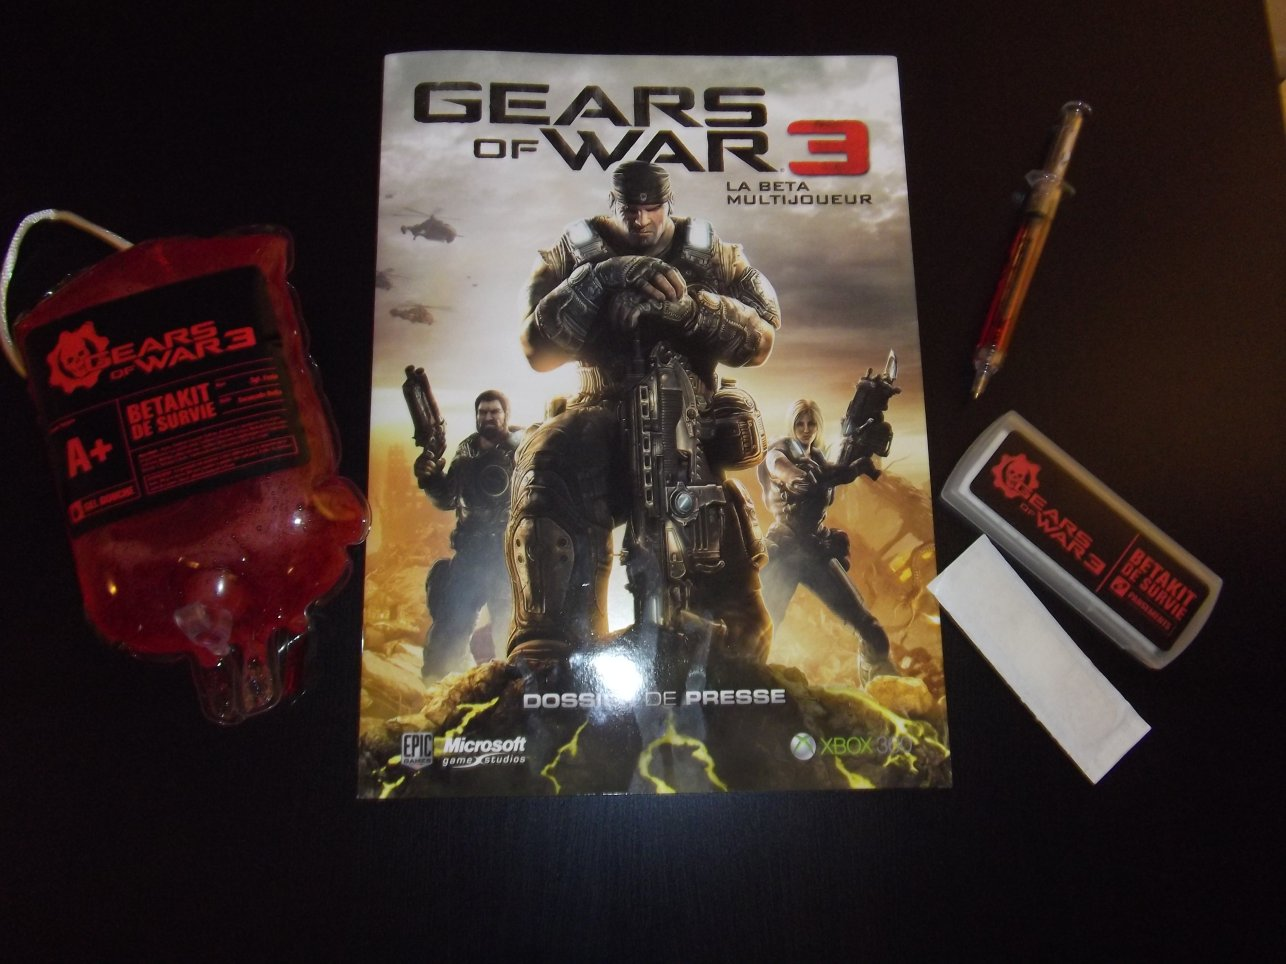 Arrivage : Press-Kit Gears of War 3 Beta Multijoueur